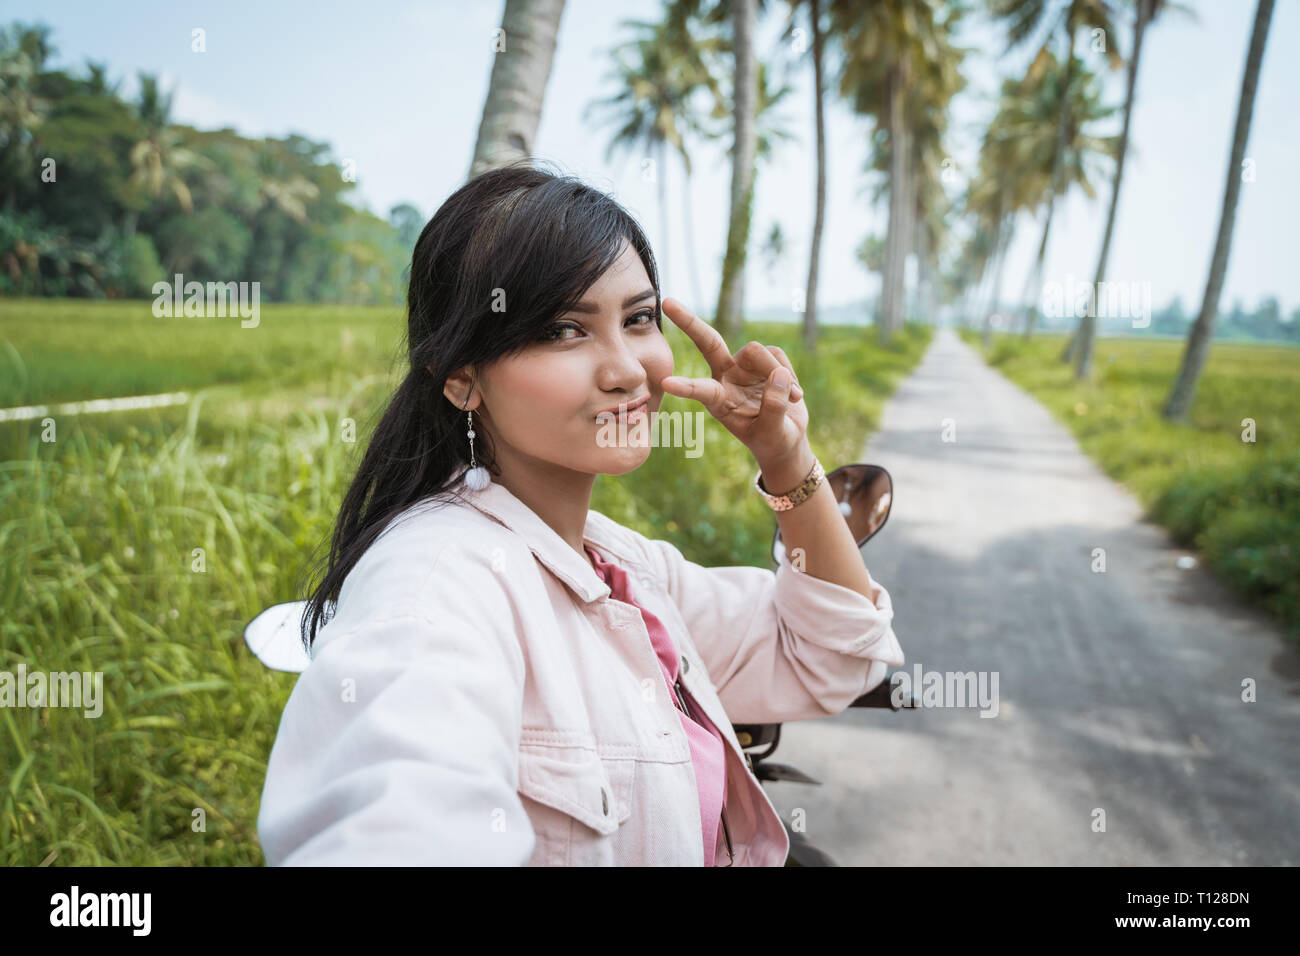 5465f2a9c selfie asian woman posing to camera outdoor - Stock Image